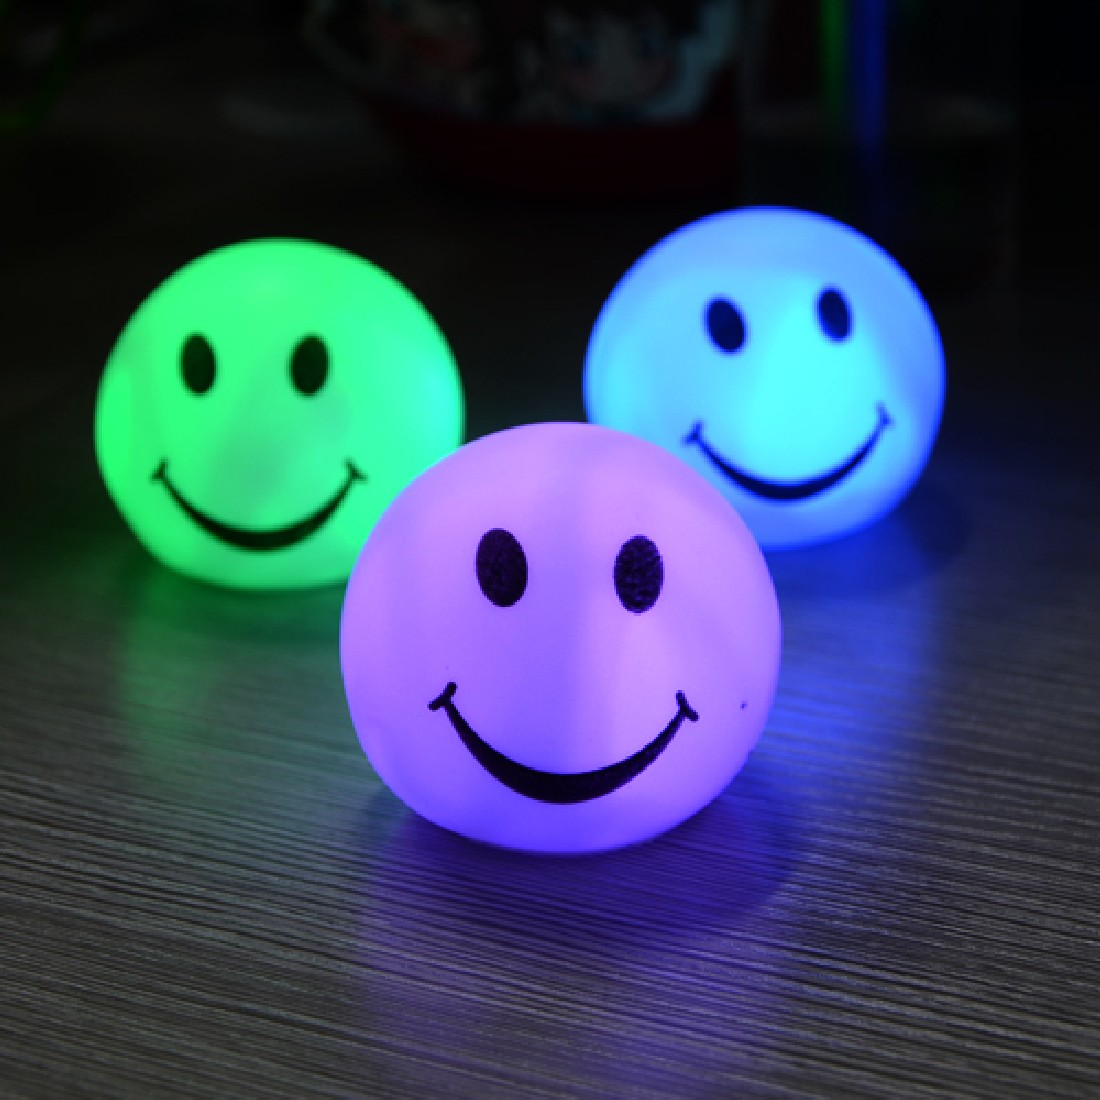 New Fashion Color Changing LED Smiling Face Shaped Night Light Lamp For Party Bedroom Decor Wedding Christmas Gifts